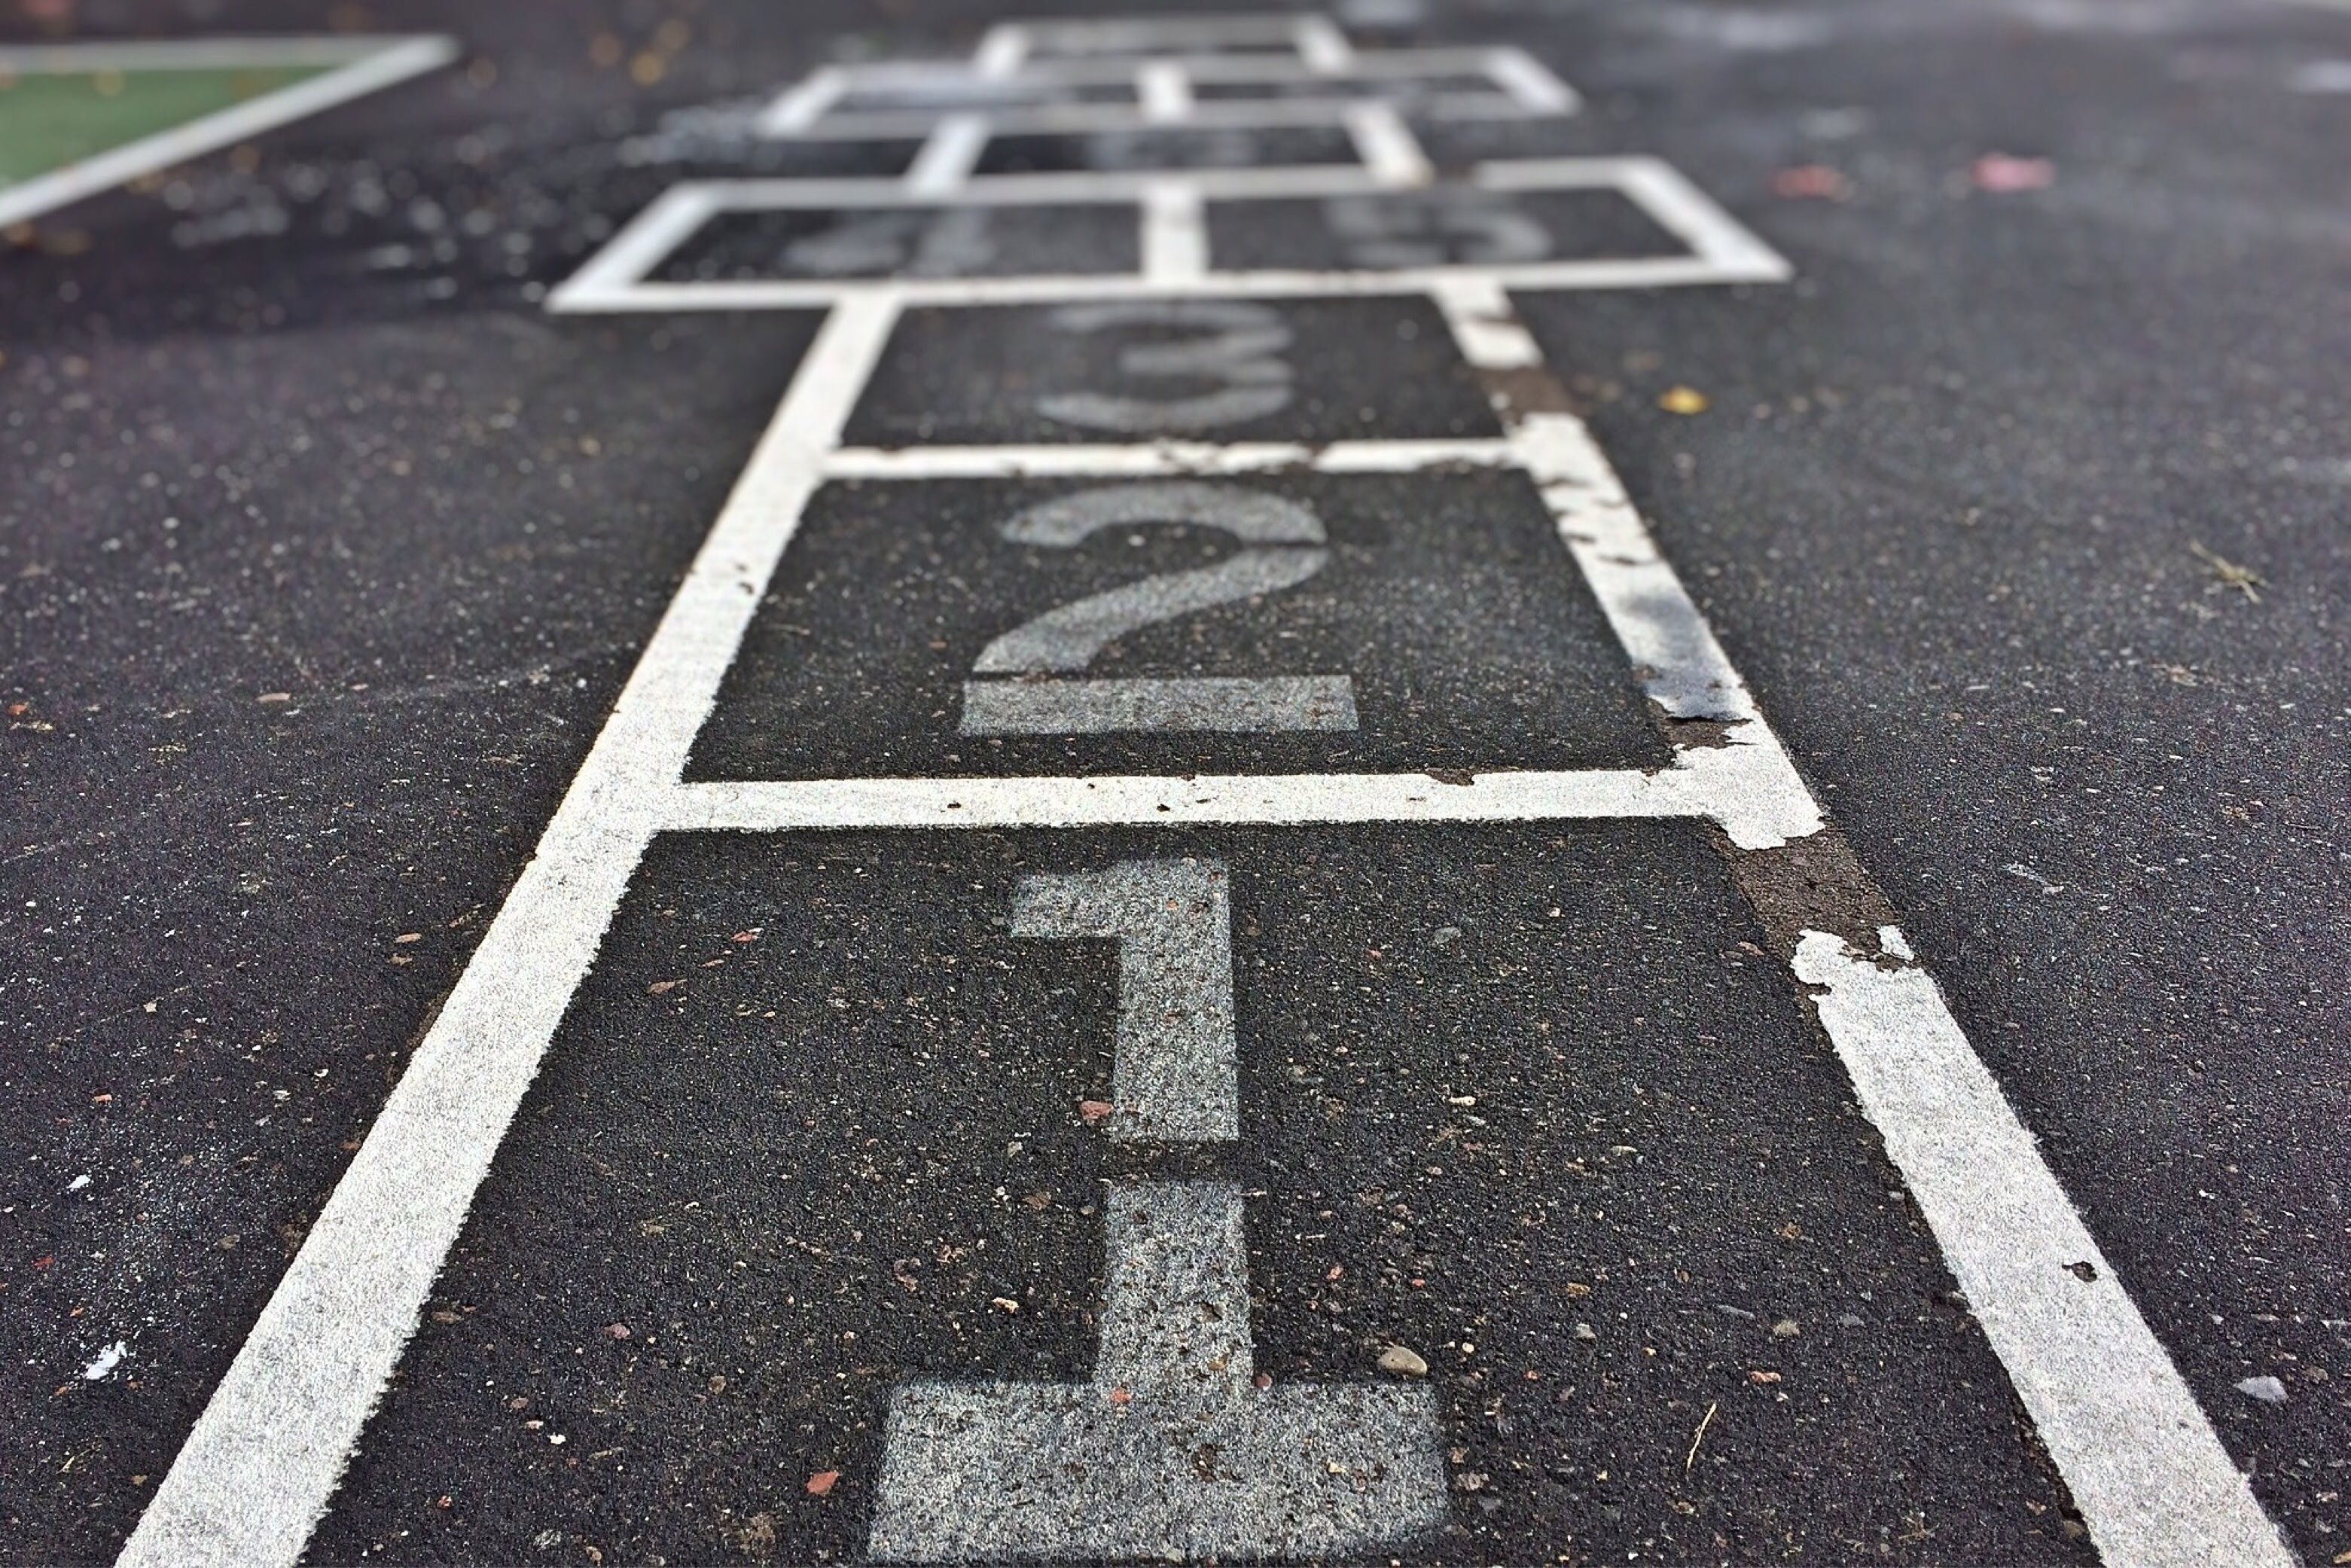 Free stock photo of numbers, game, pavement, asphalt